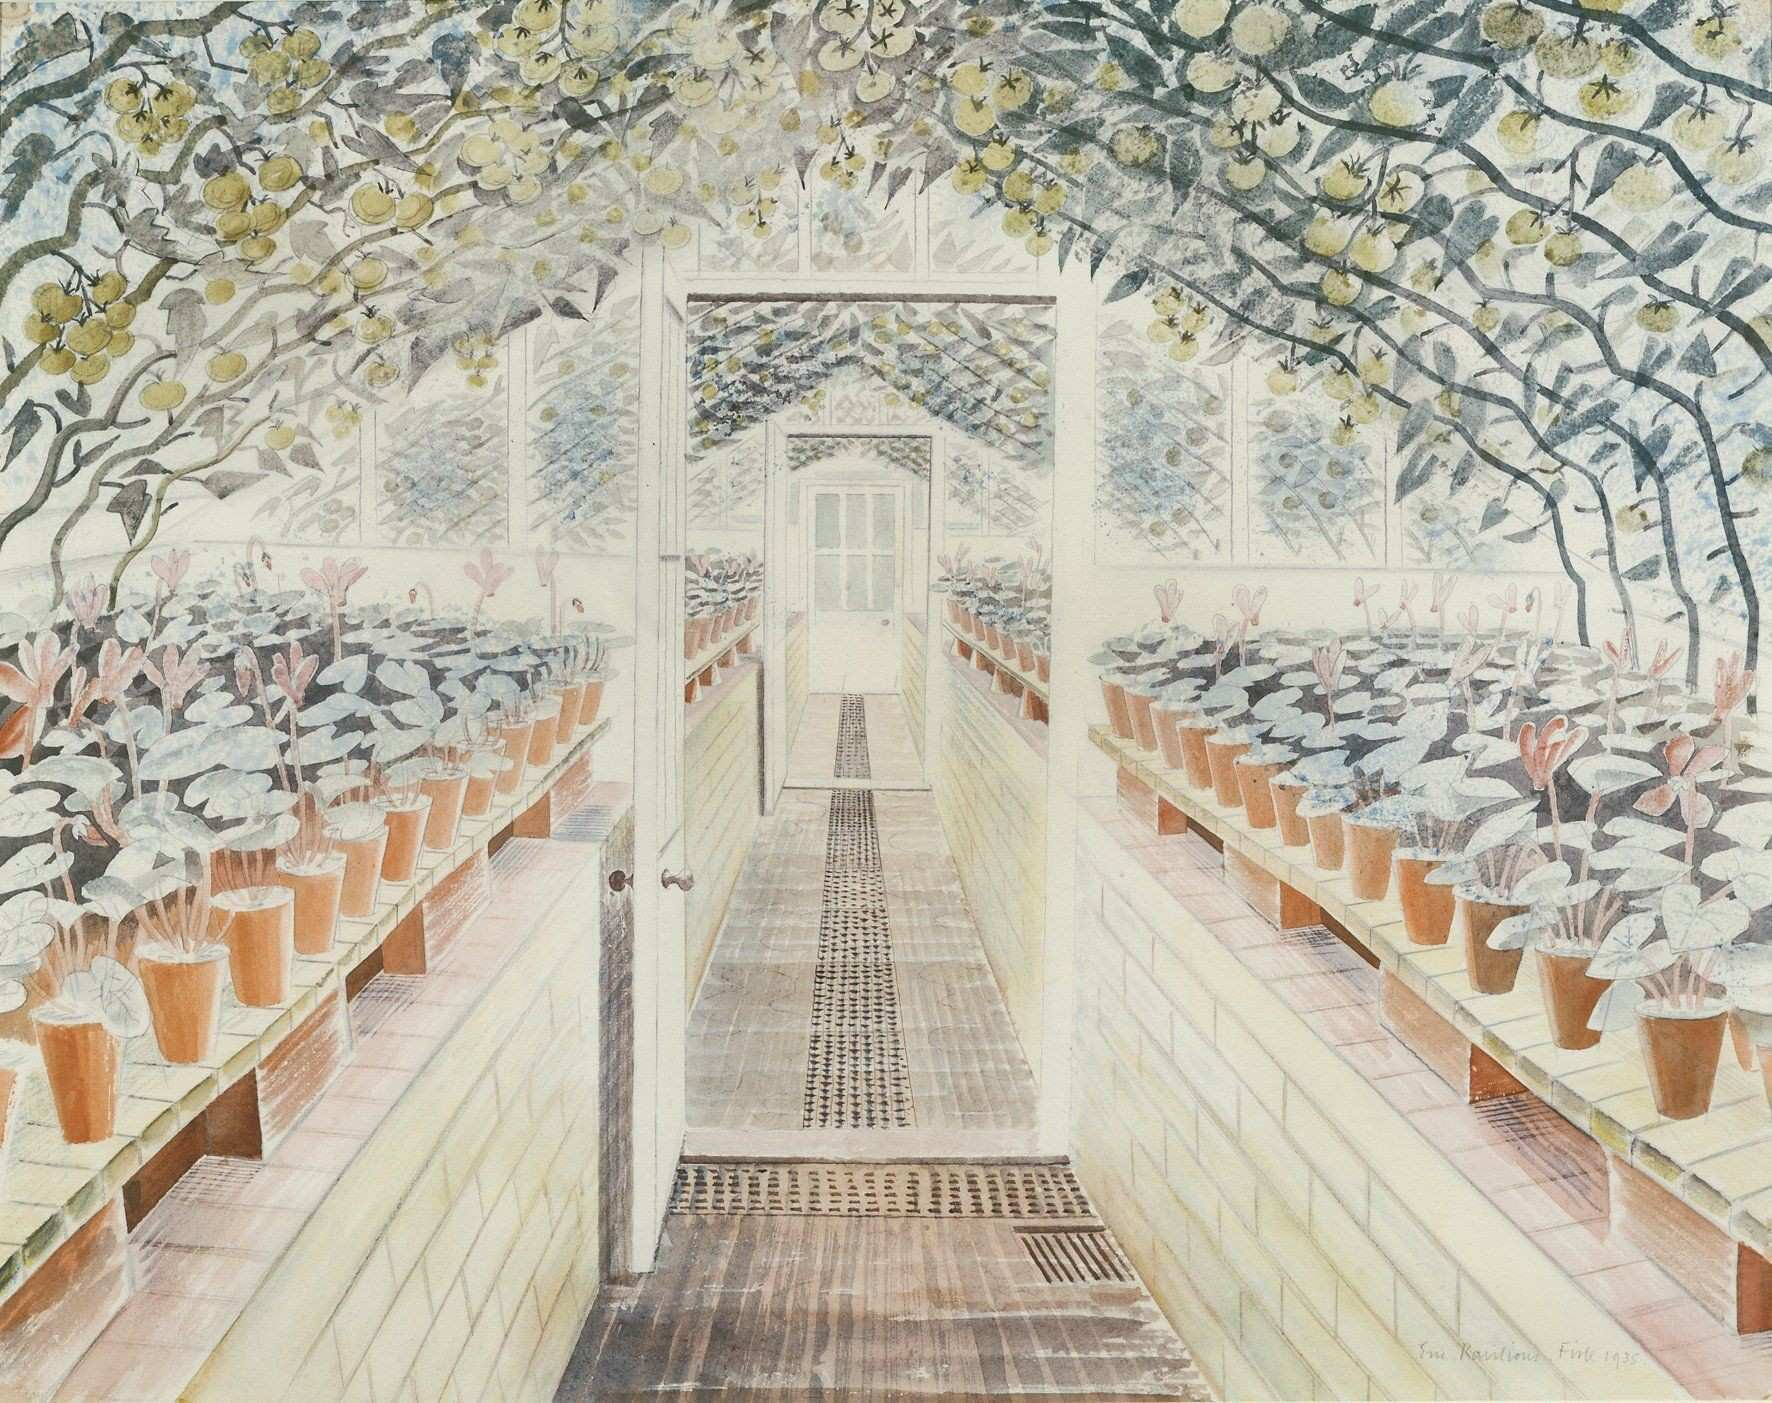 We re Fawning Over The Detailed Art of Eric Ravilious